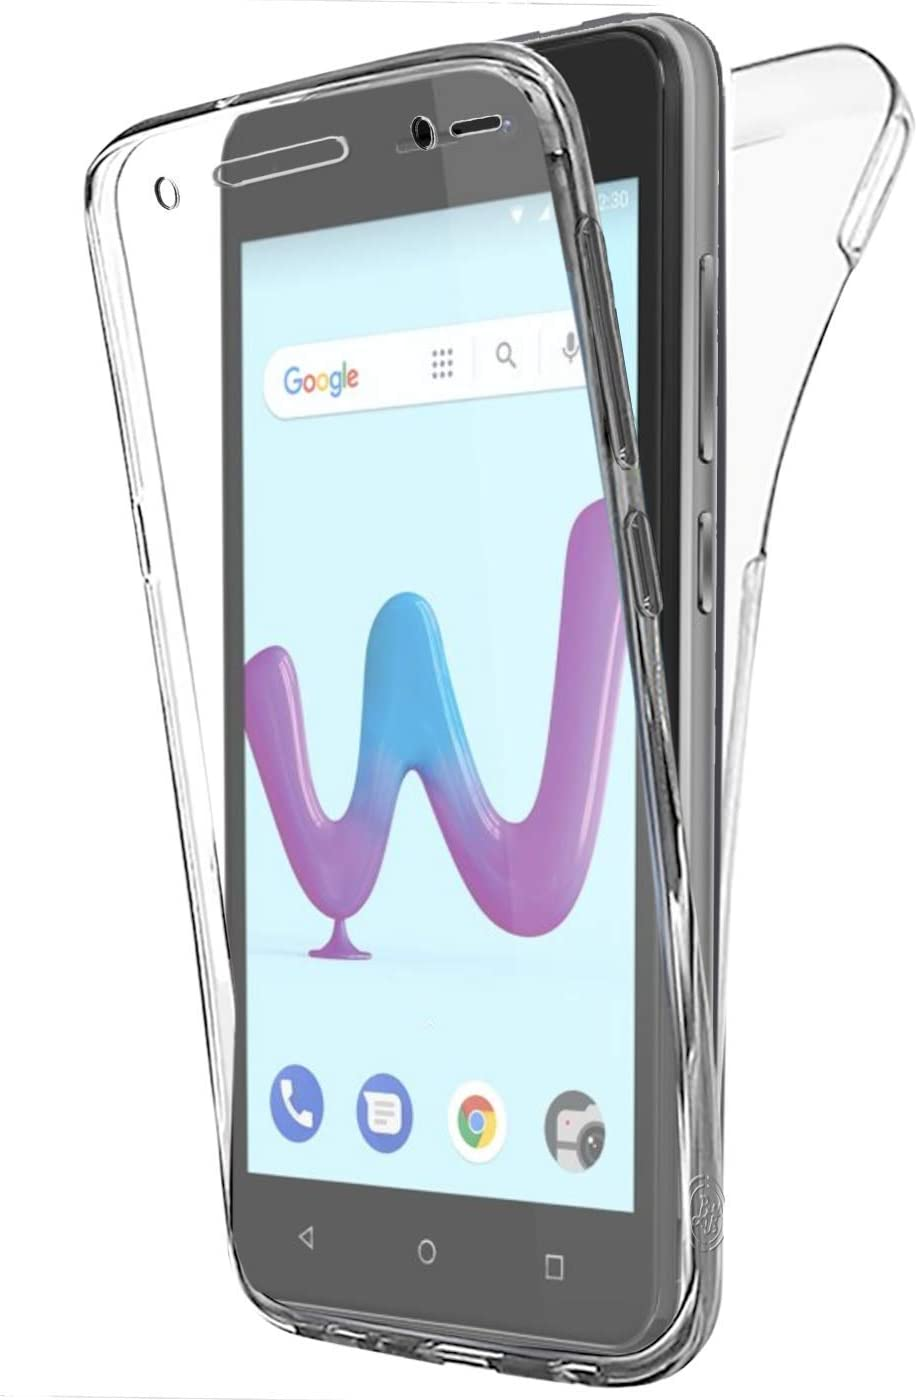 Coque Gel Wiko Sunny 3, Buyus Coque 360 Degres Protection Integral Anti Choc, Etui Ultra Mince Transparent Invisible pour Wiko Sunny 3, Coque Wiko ...